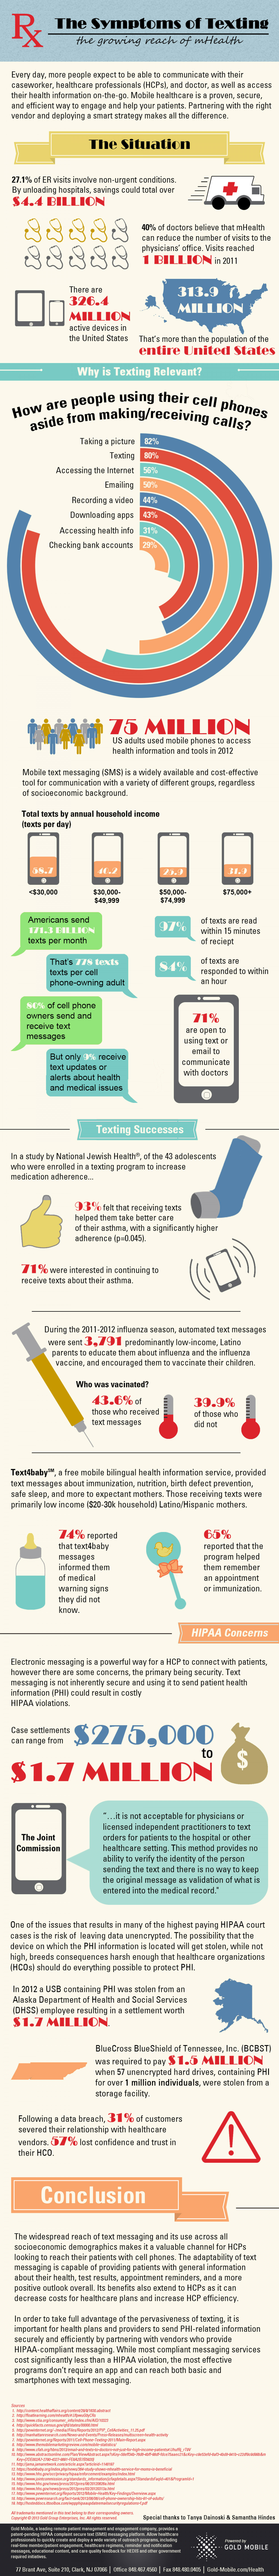 The Symptoms of Texting - the growing reach of mHealth Infographic